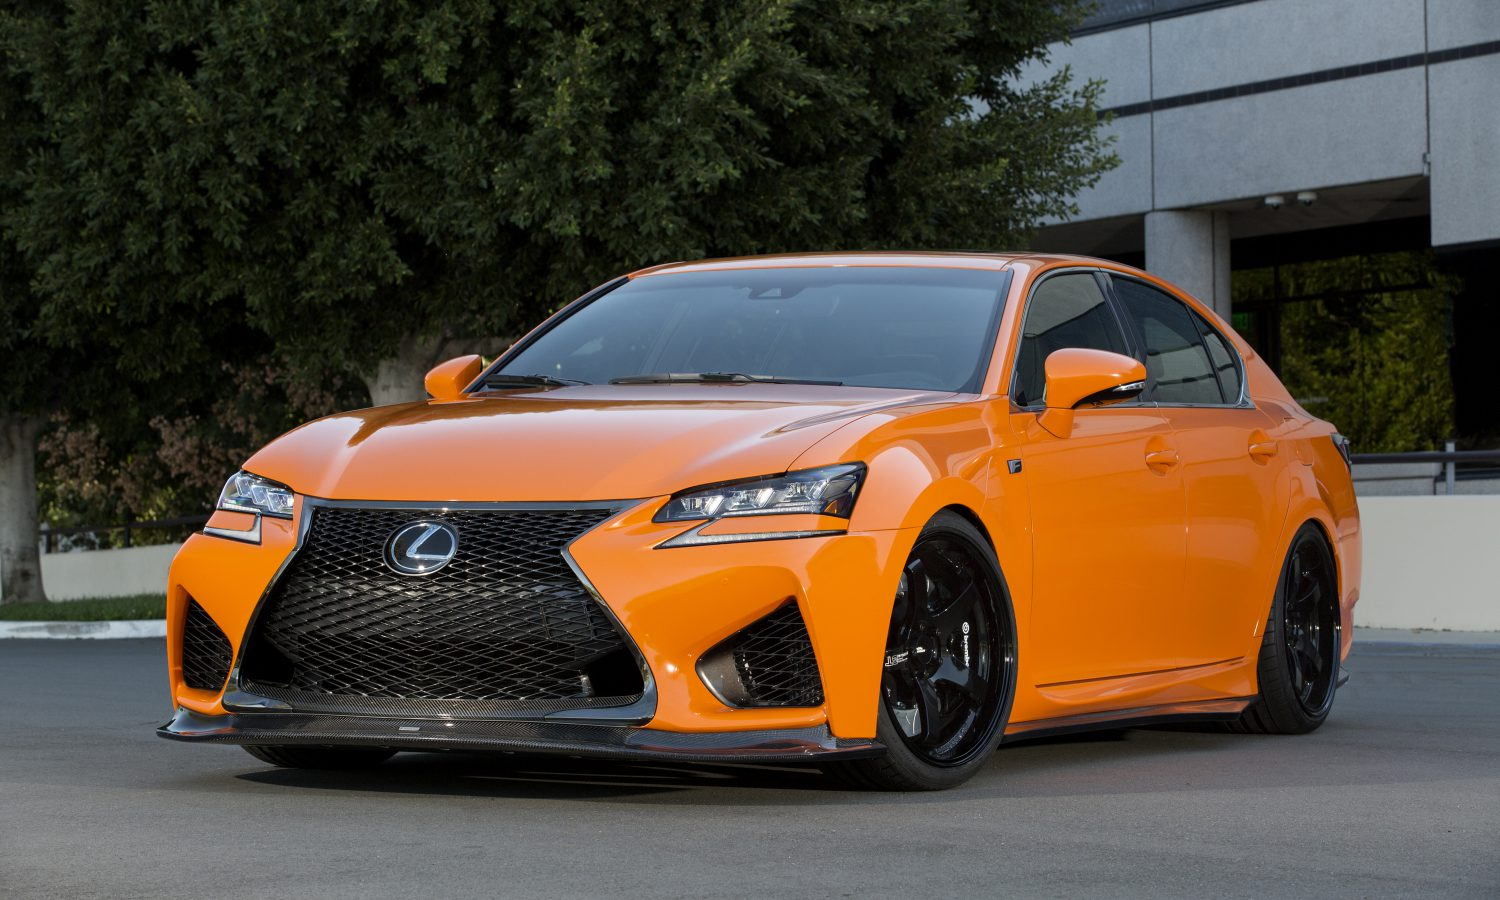 2015 SEMA/Lexus – 2016 Lexus GS F by Gordon Ting/Beyond Marketing Fact Sheet